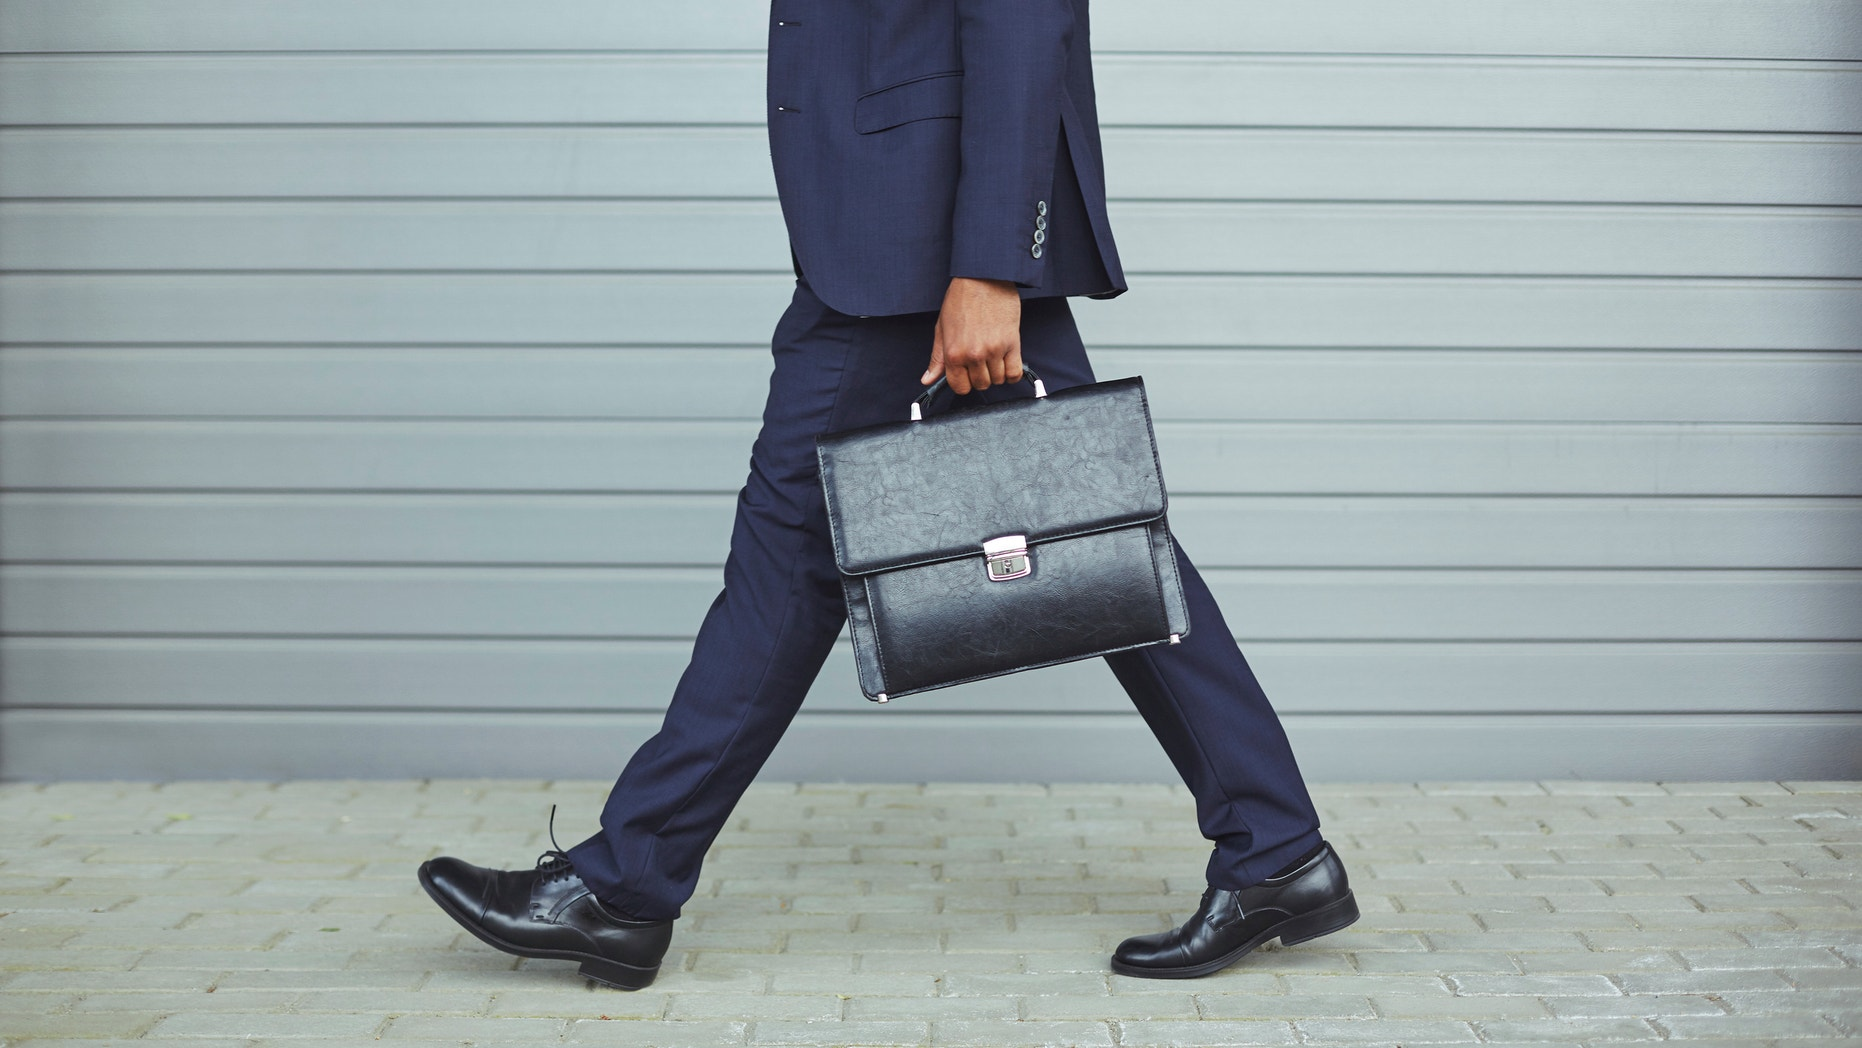 Legs of businessman in suit walking to work in the morning